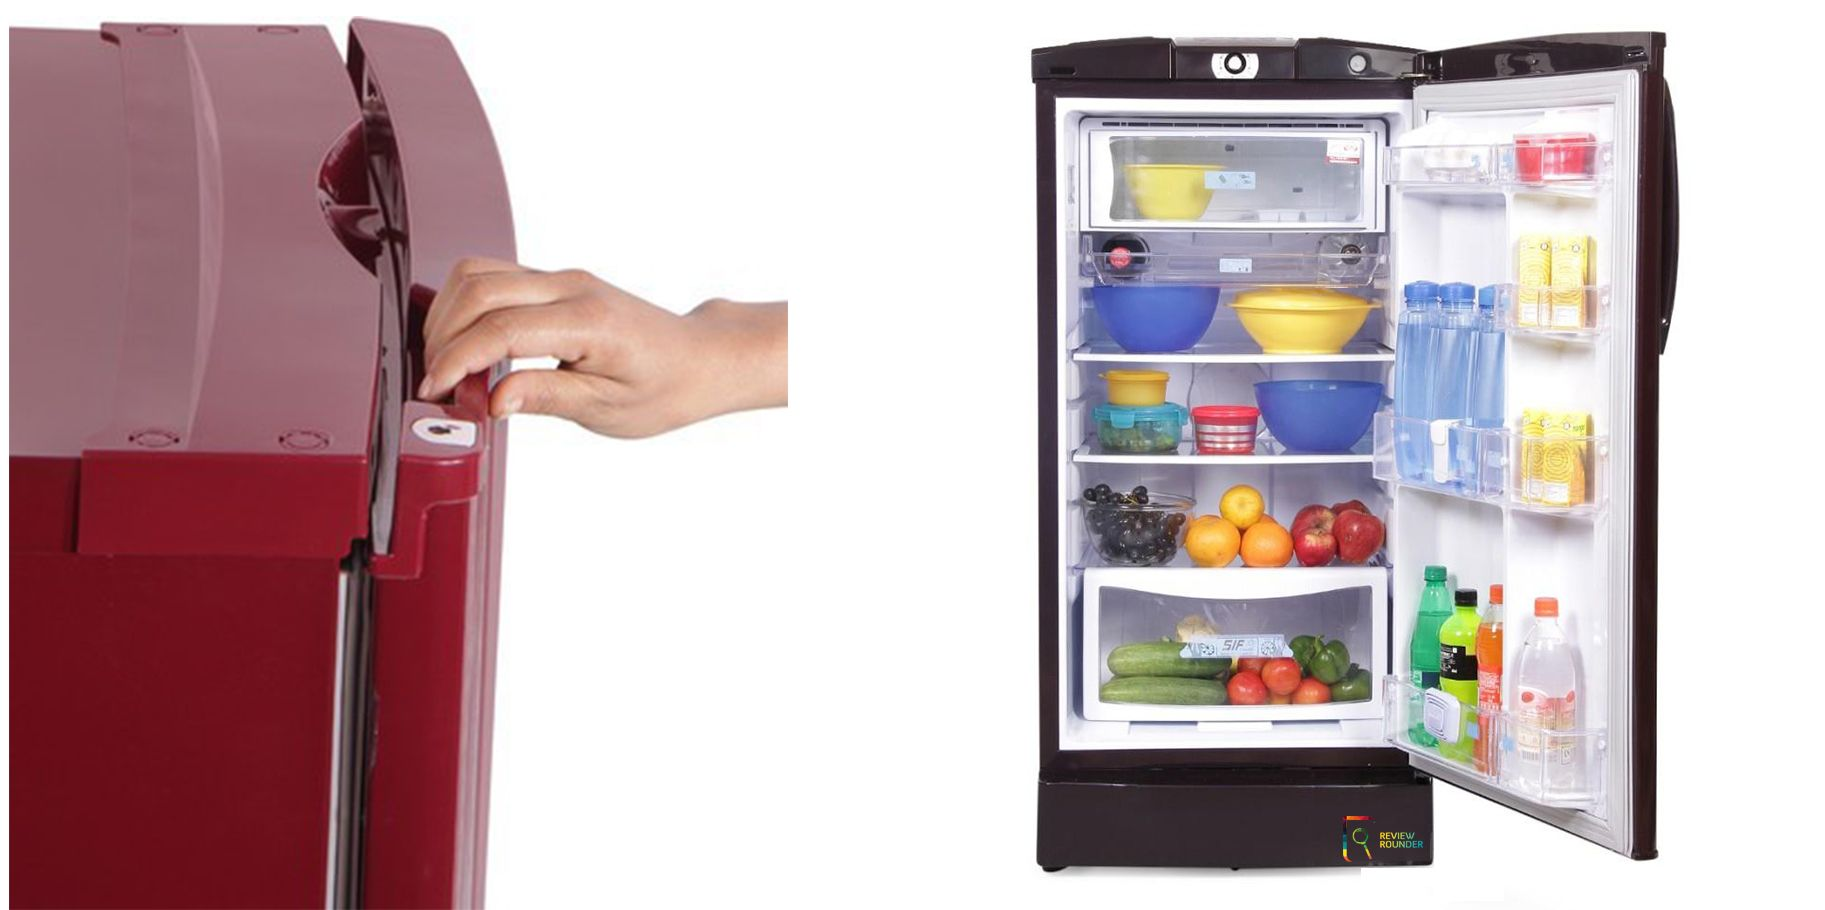 Godrej RD EDGE 185 CHTM 4.2 Direct Cool Single Door Refrigerator is a stunning beauty.